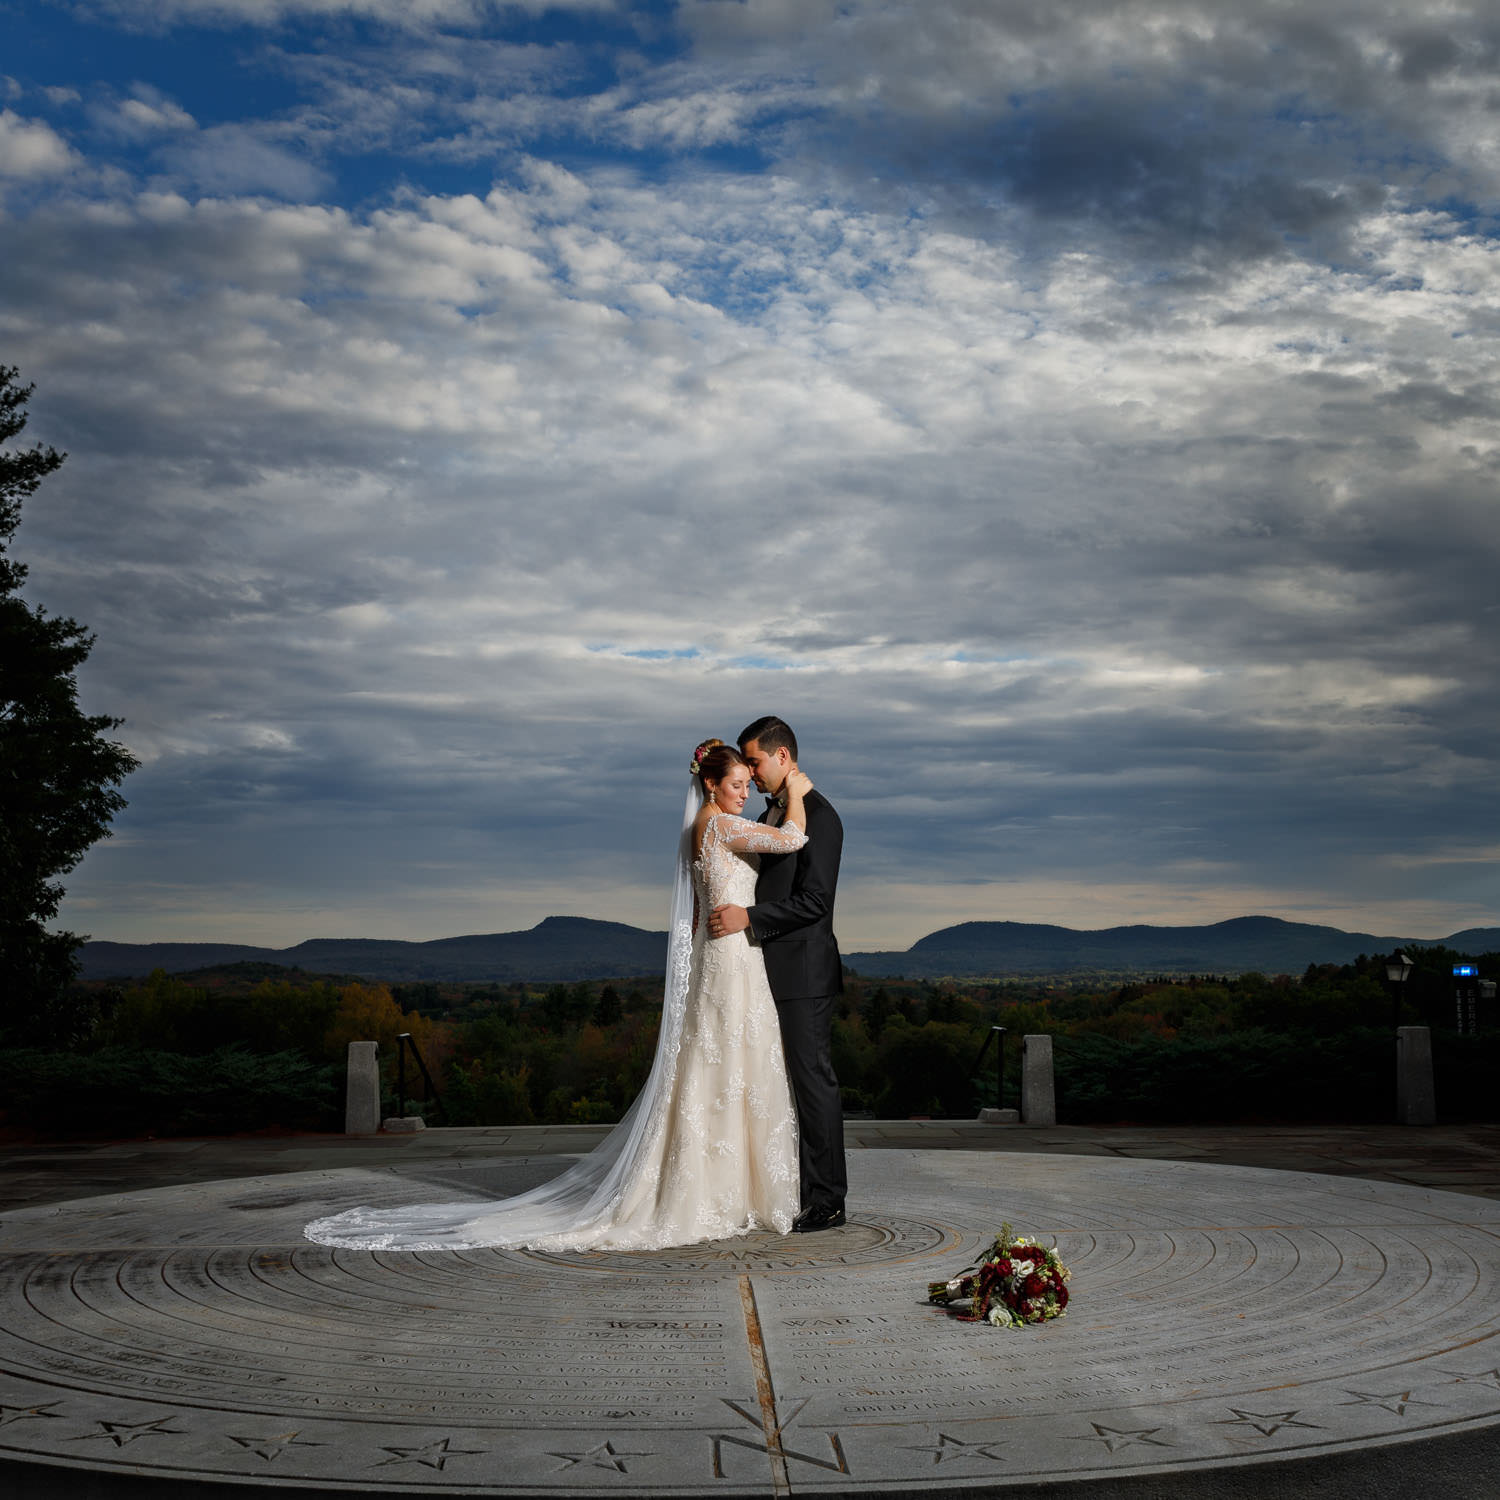 Romantic bride and groom photo from Hampshire College with dramatic sky in the background